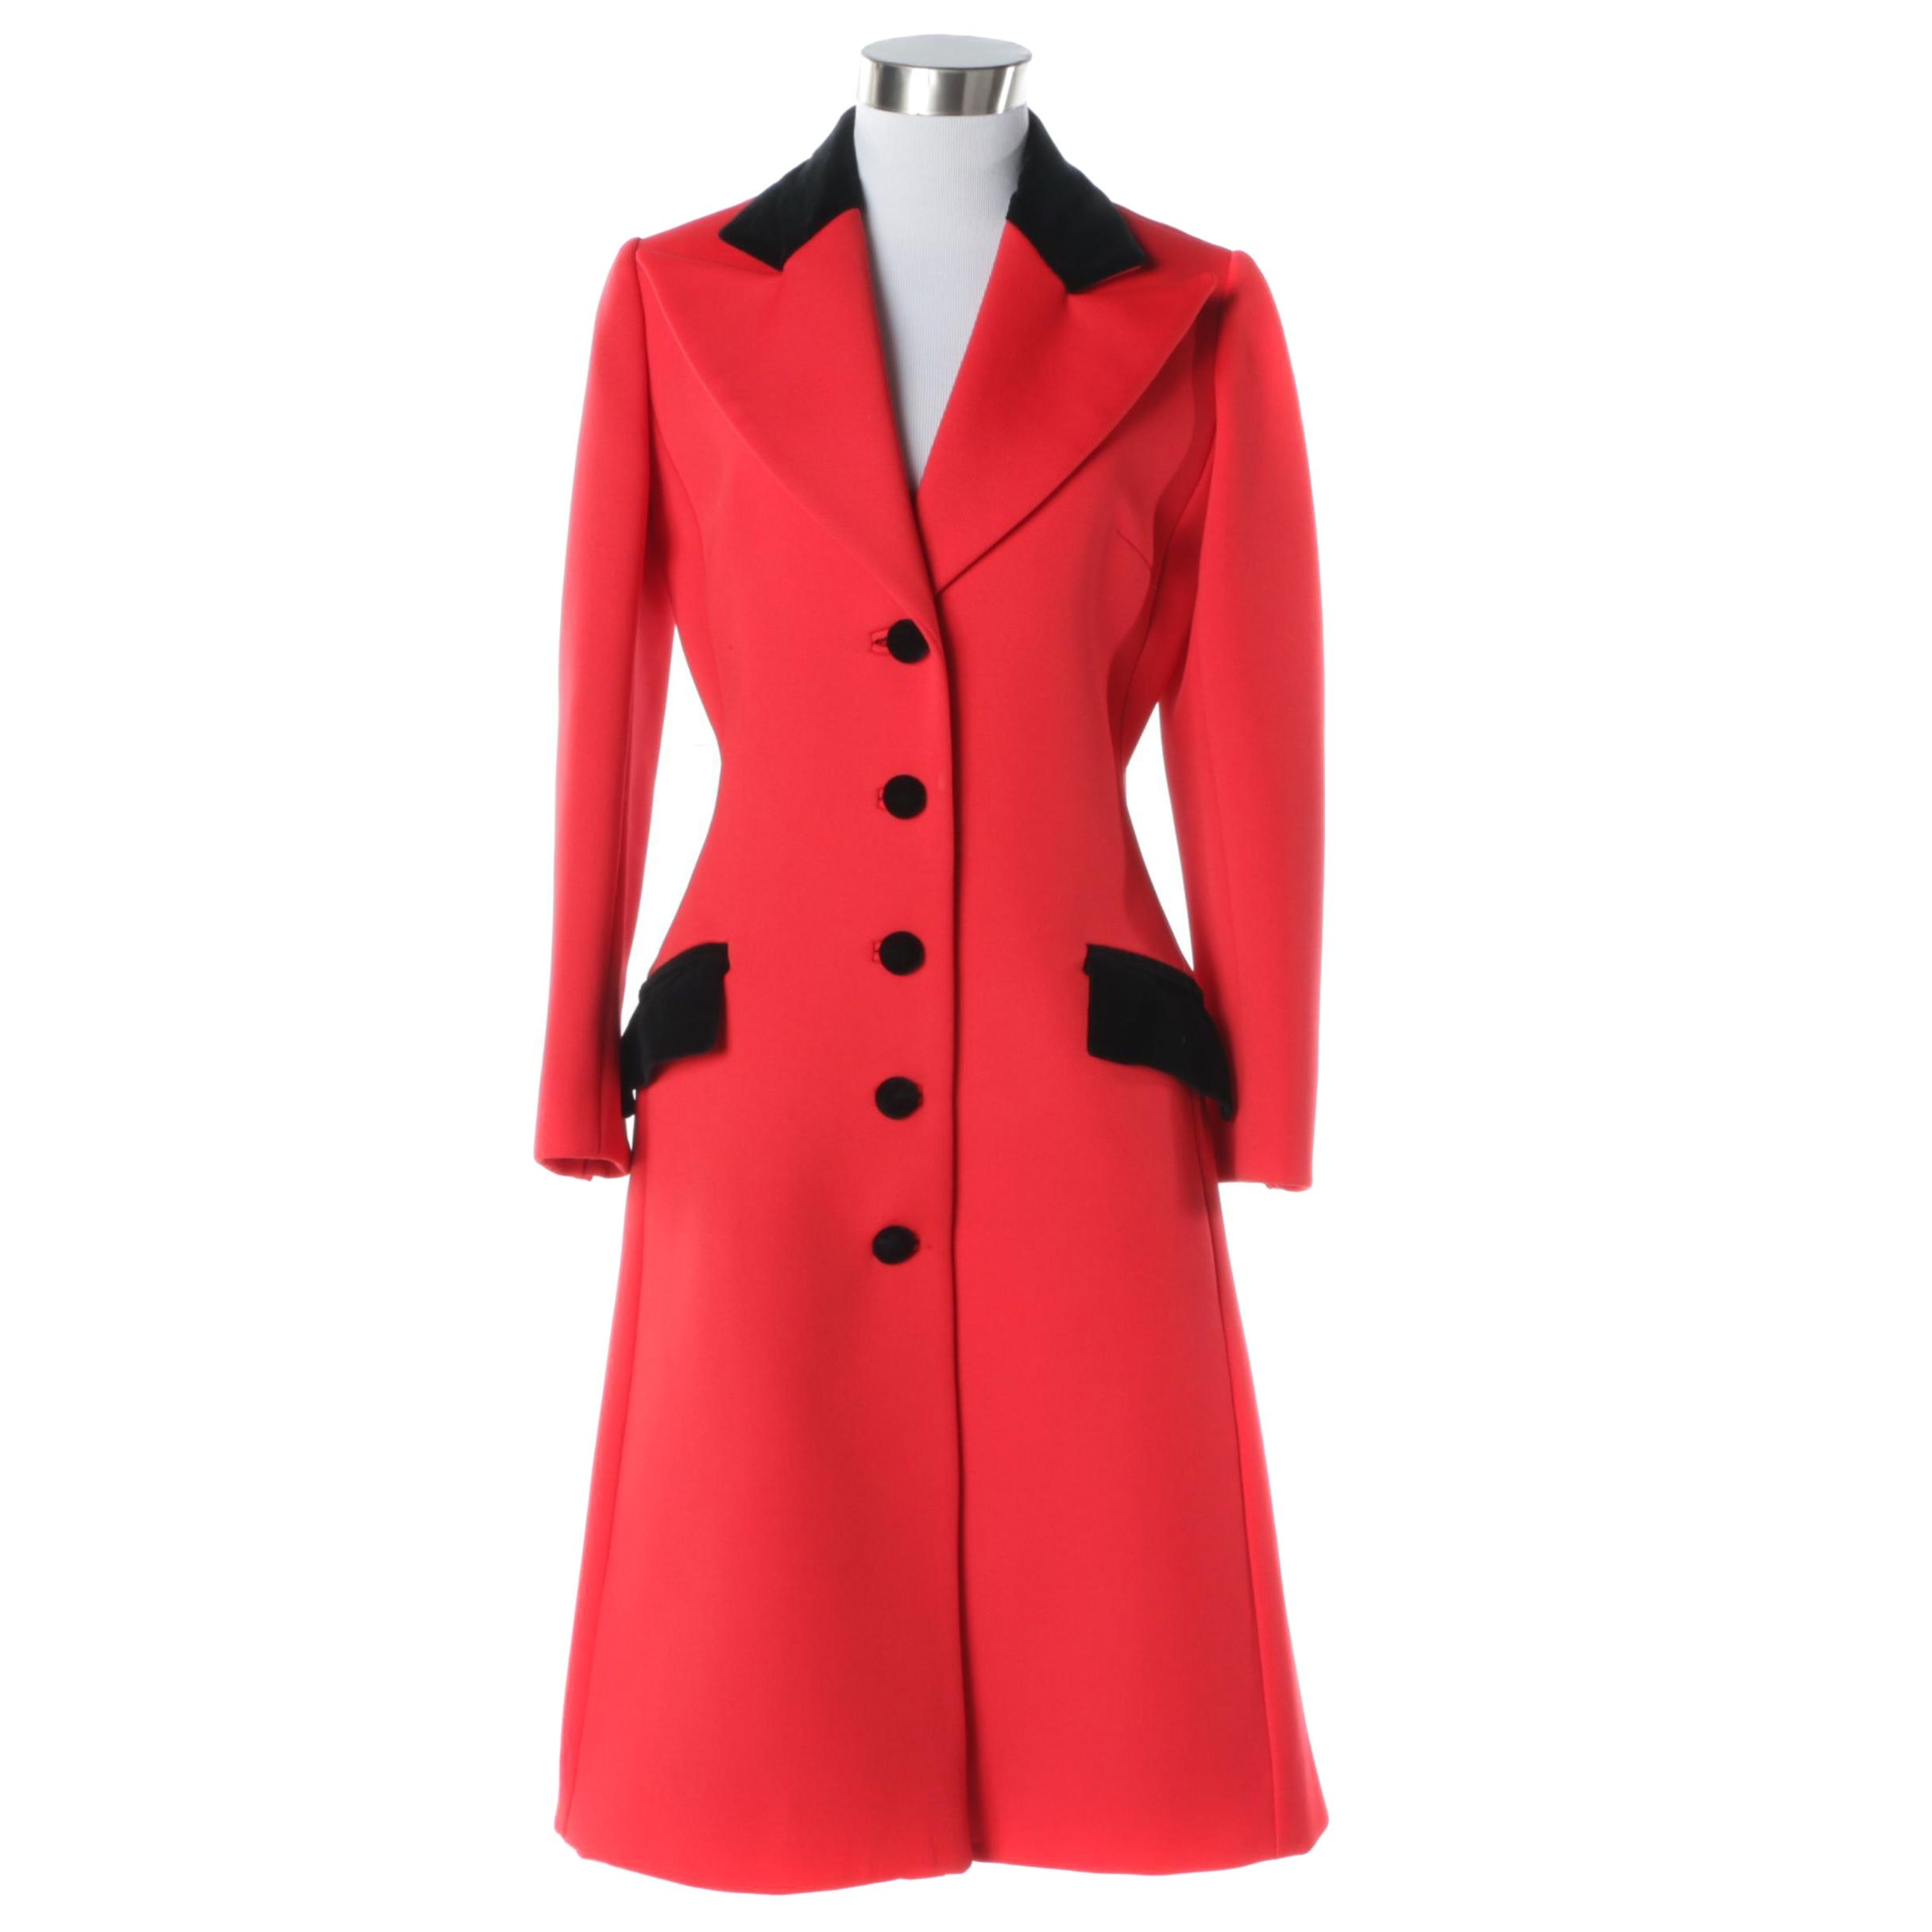 Women's 1960s Vintage Lilli Ann Mod Red and Black Coat